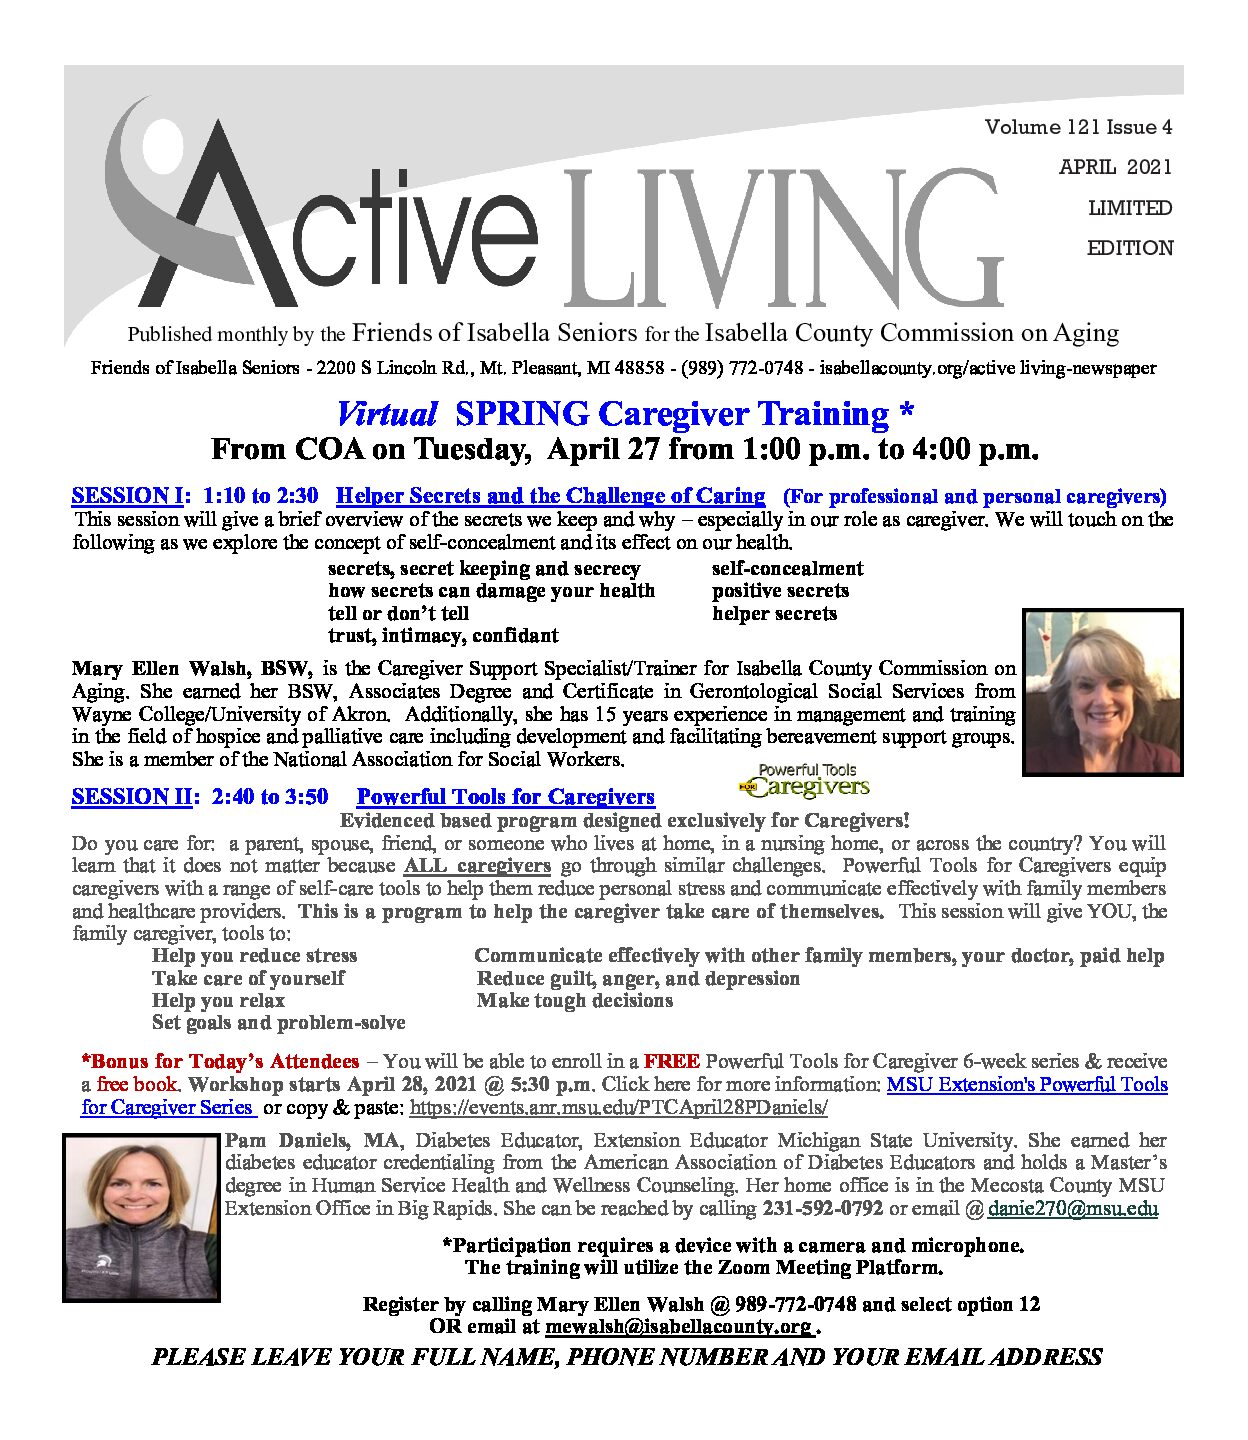 preview image of first page April 2021 Active Living